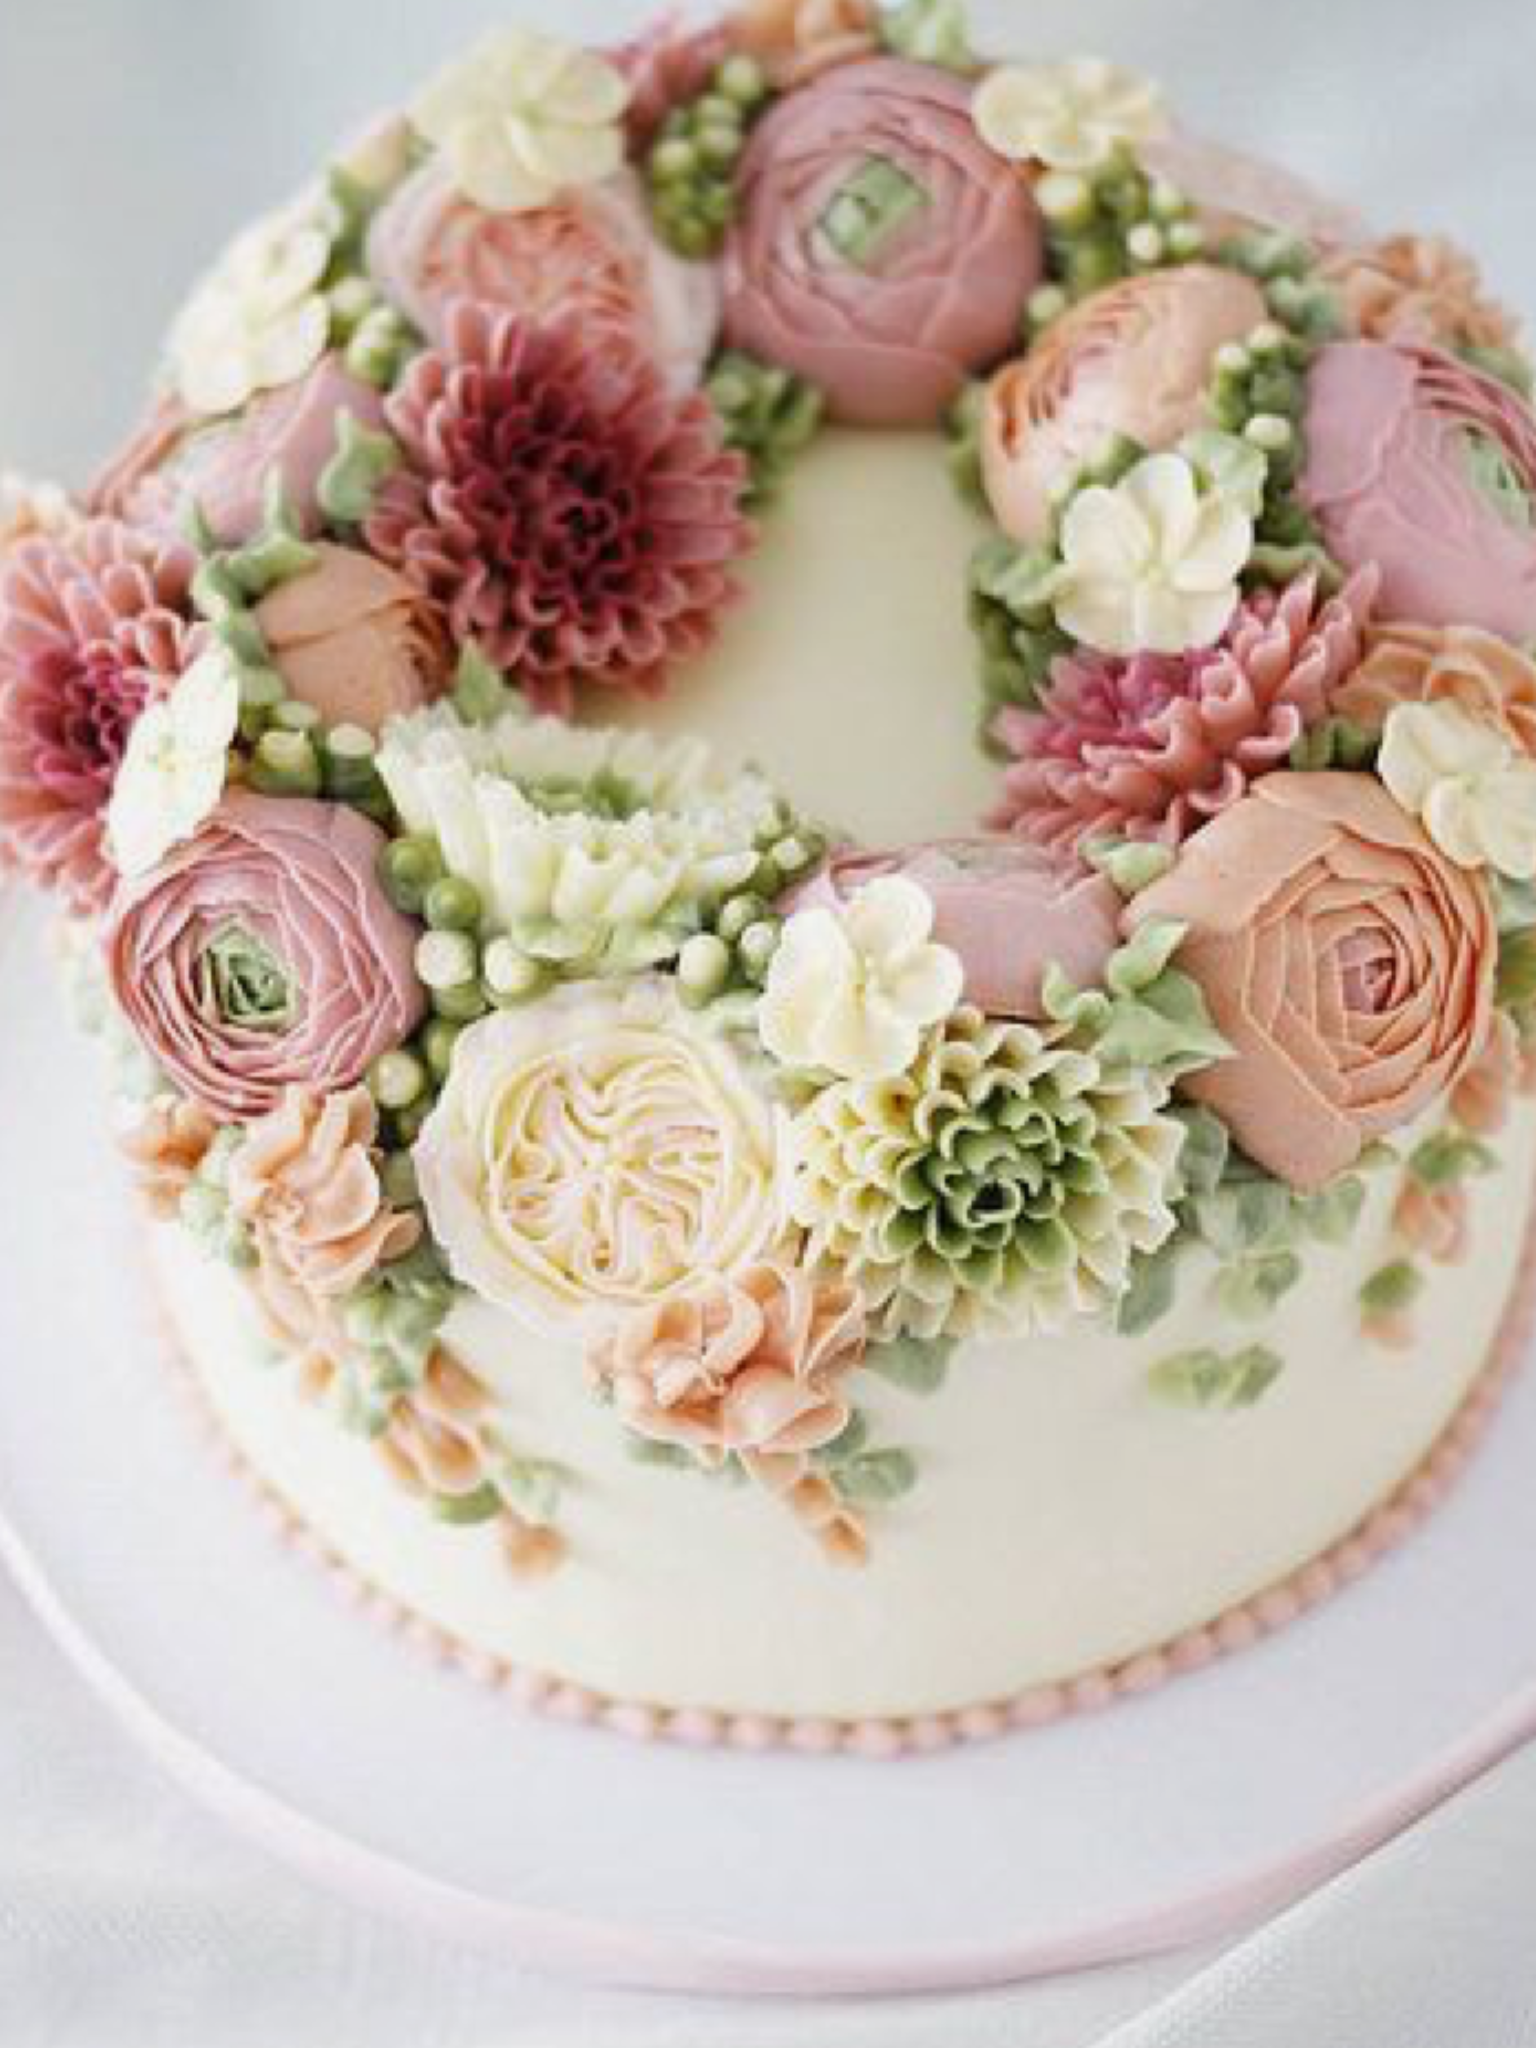 Pin by mela wilson on cakes i like pinterest cake decorating buttercream flower online class is now available pictured here is one out of the three cake projects you will learn in this class izmirmasajfo Image collections